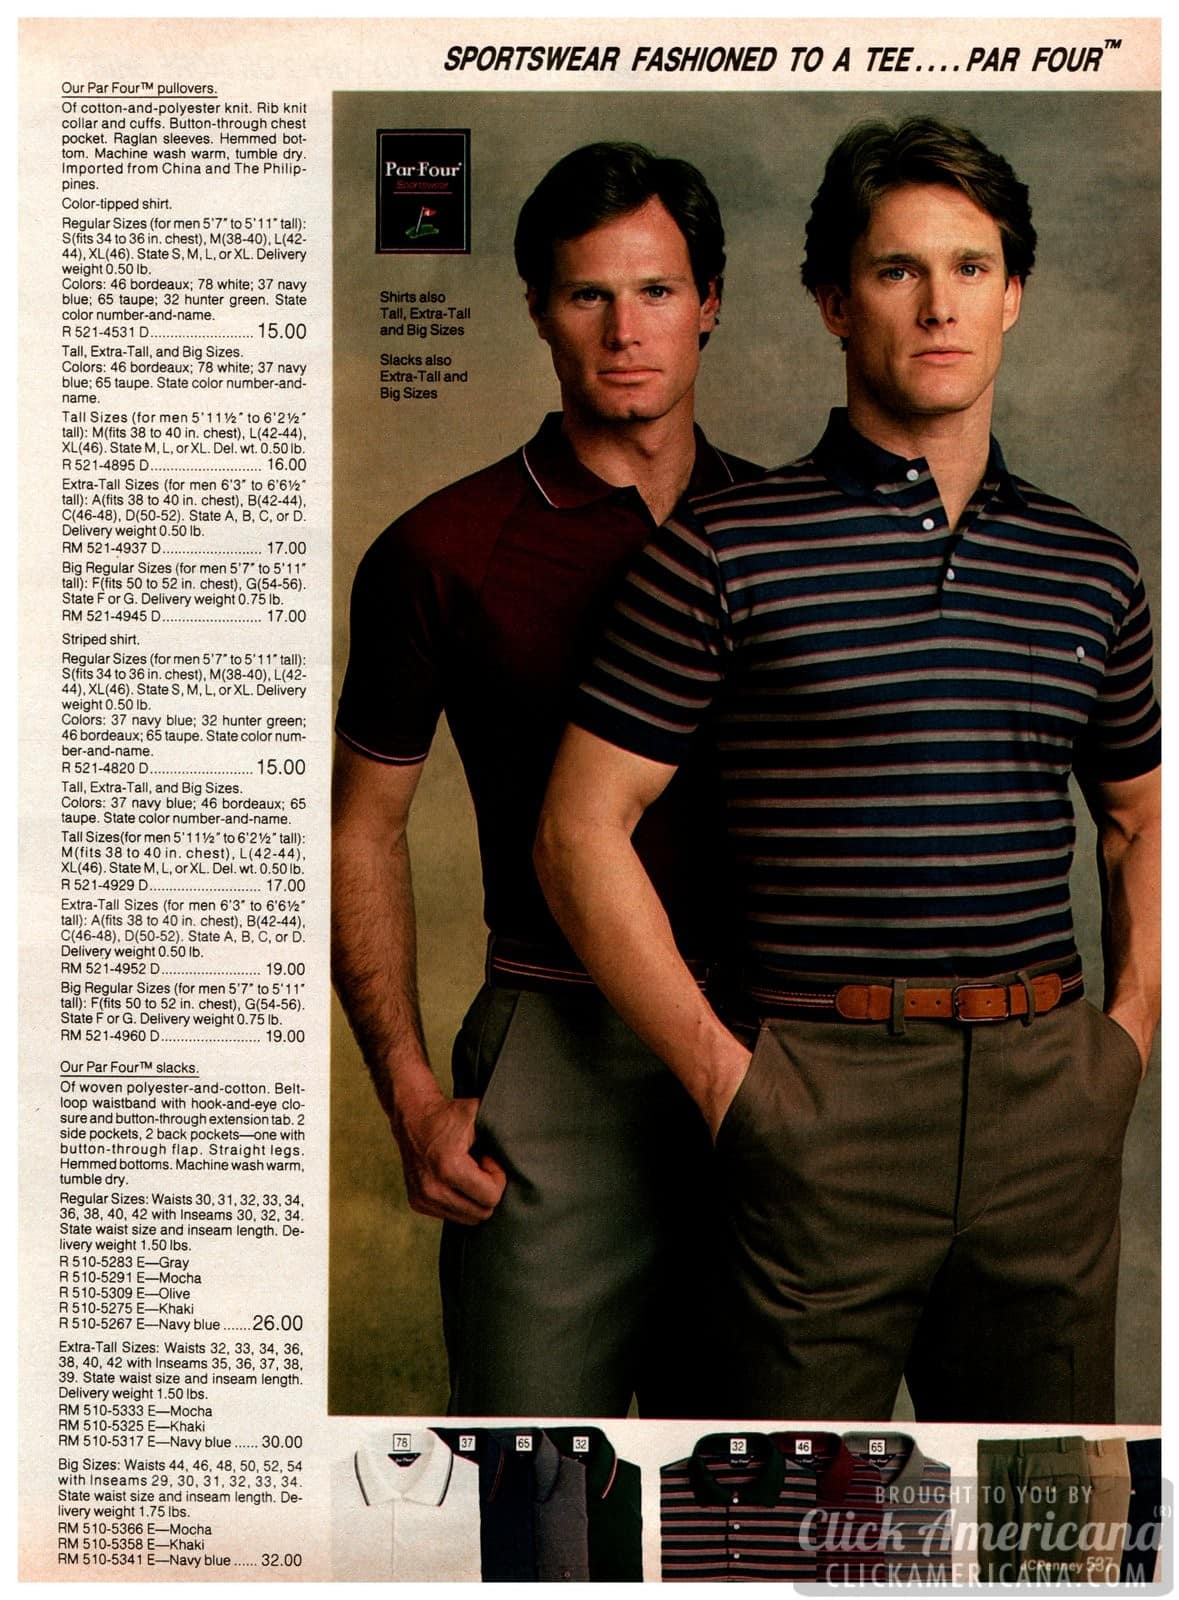 Par Four pullovers and striped shirts for men - plus slacks in gray, mocha, olive, khaki and navy blue